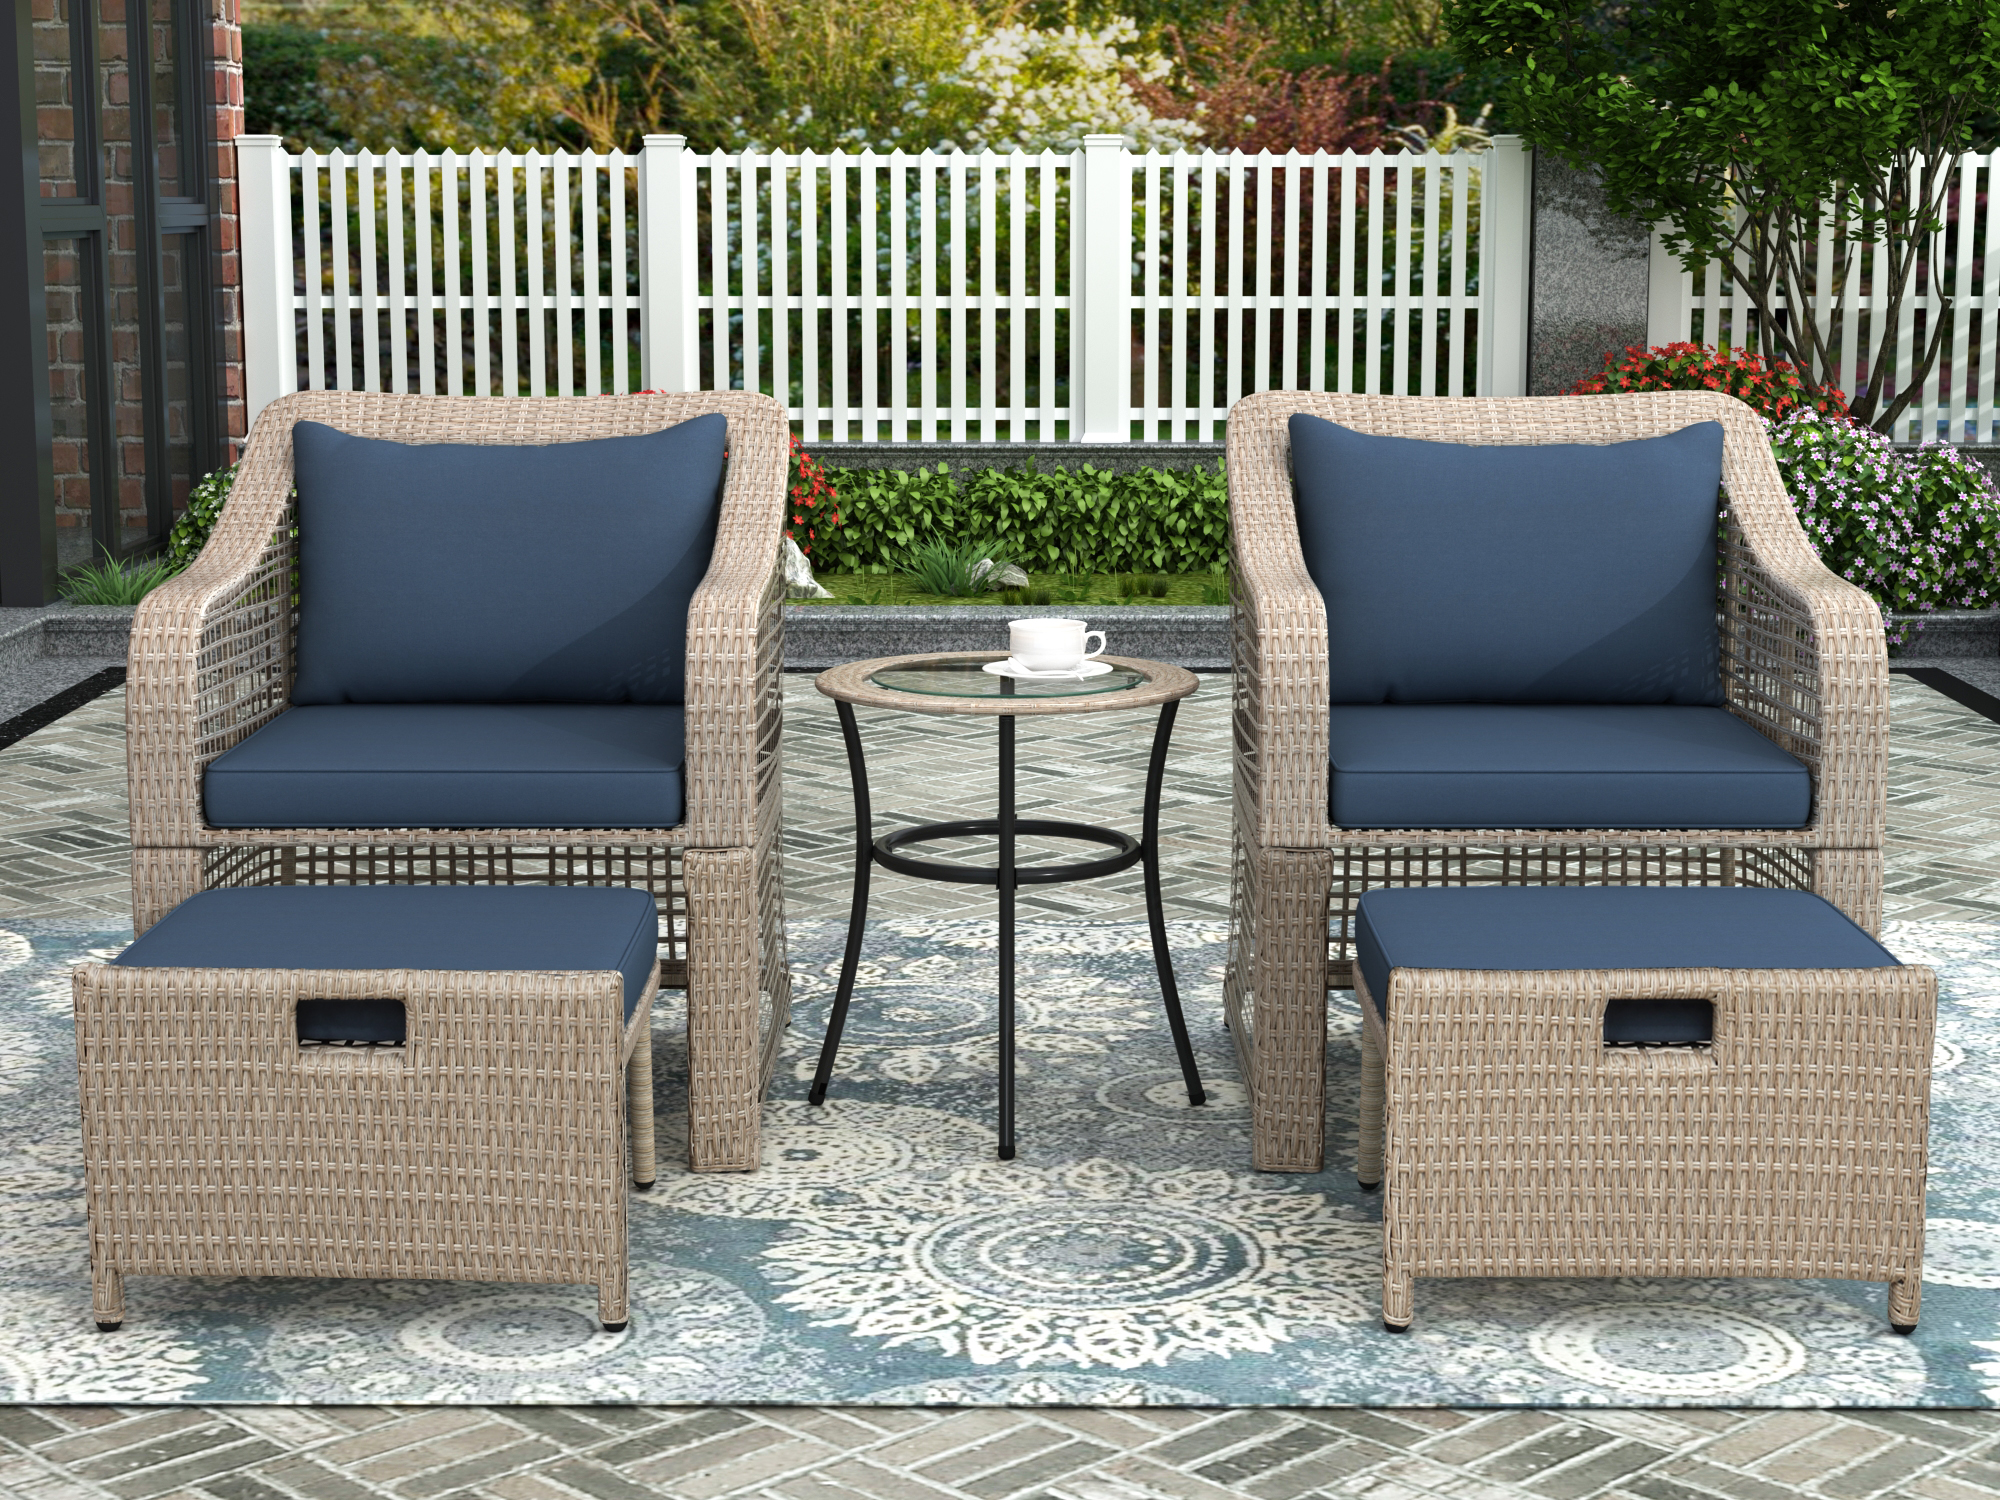 5 piece outdoor patio chairs set btmway rattan wicker patio conversation furniture with ottoman patio porch balcony bistro lounge chairs set with